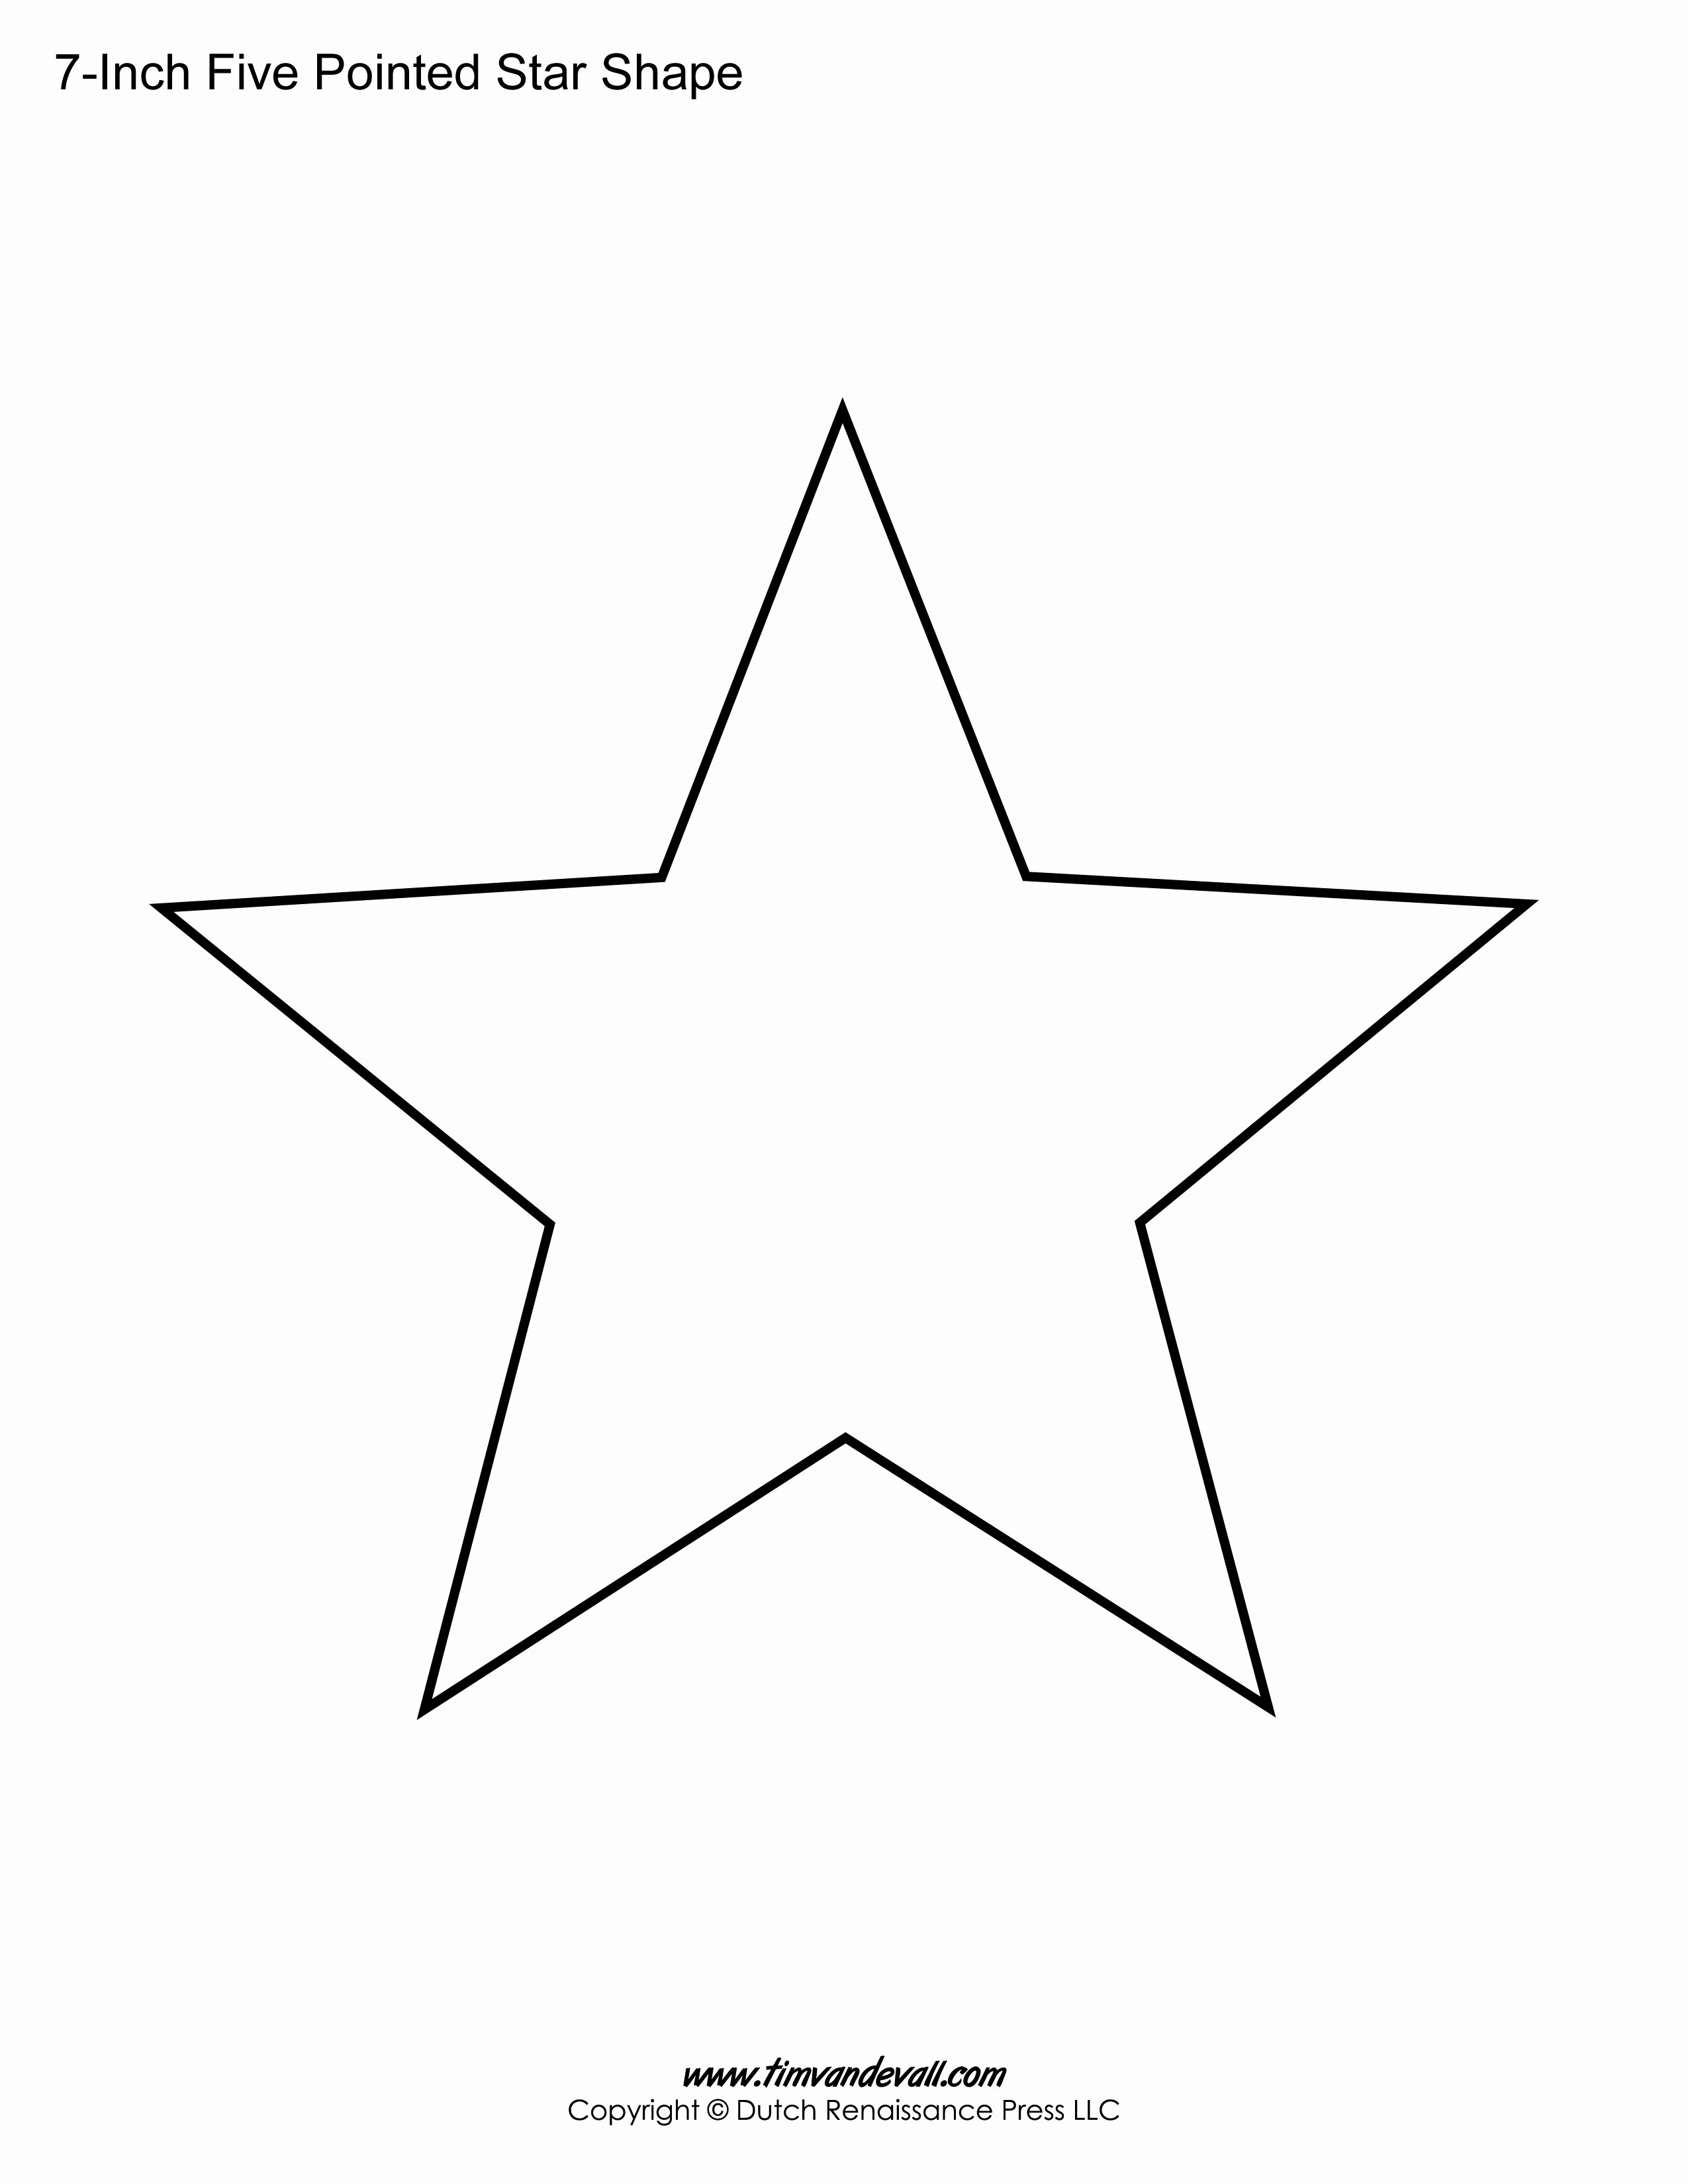 6 Inch Star Elegant Printable Five Pointed Star Templates Blank Shape Pdfs